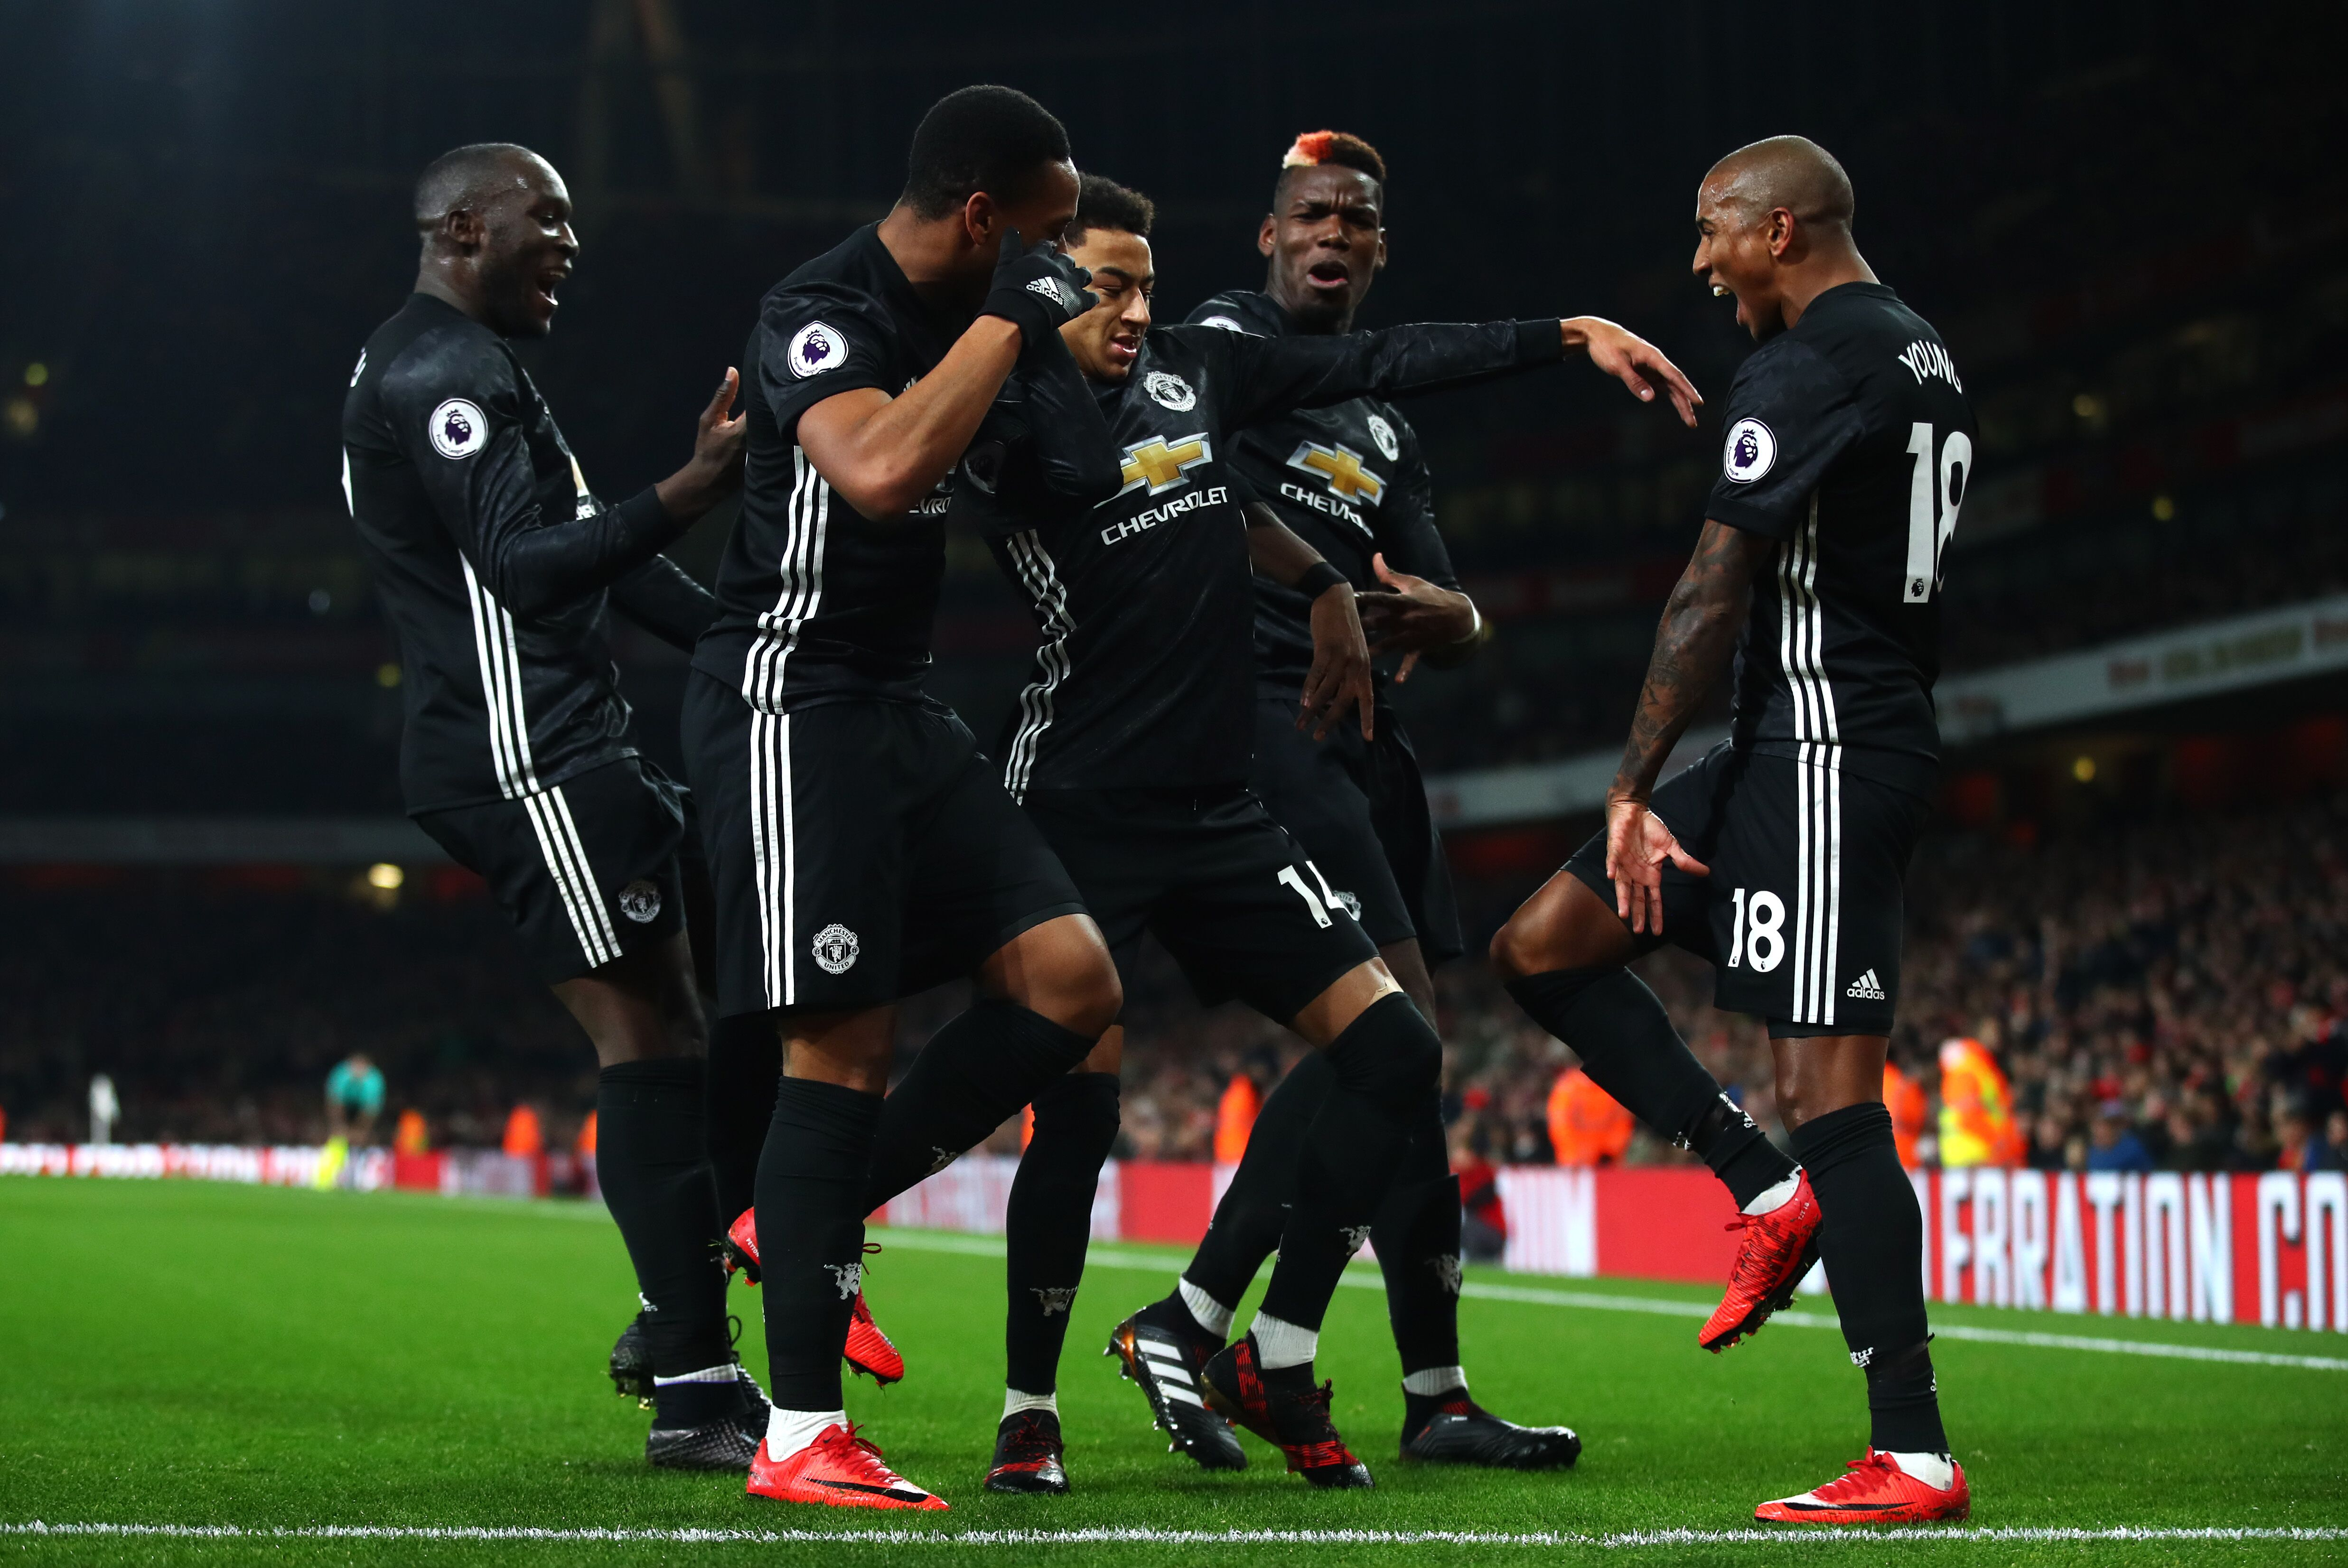 Arsenal Vs Manchester United: Highlights And Analysis From